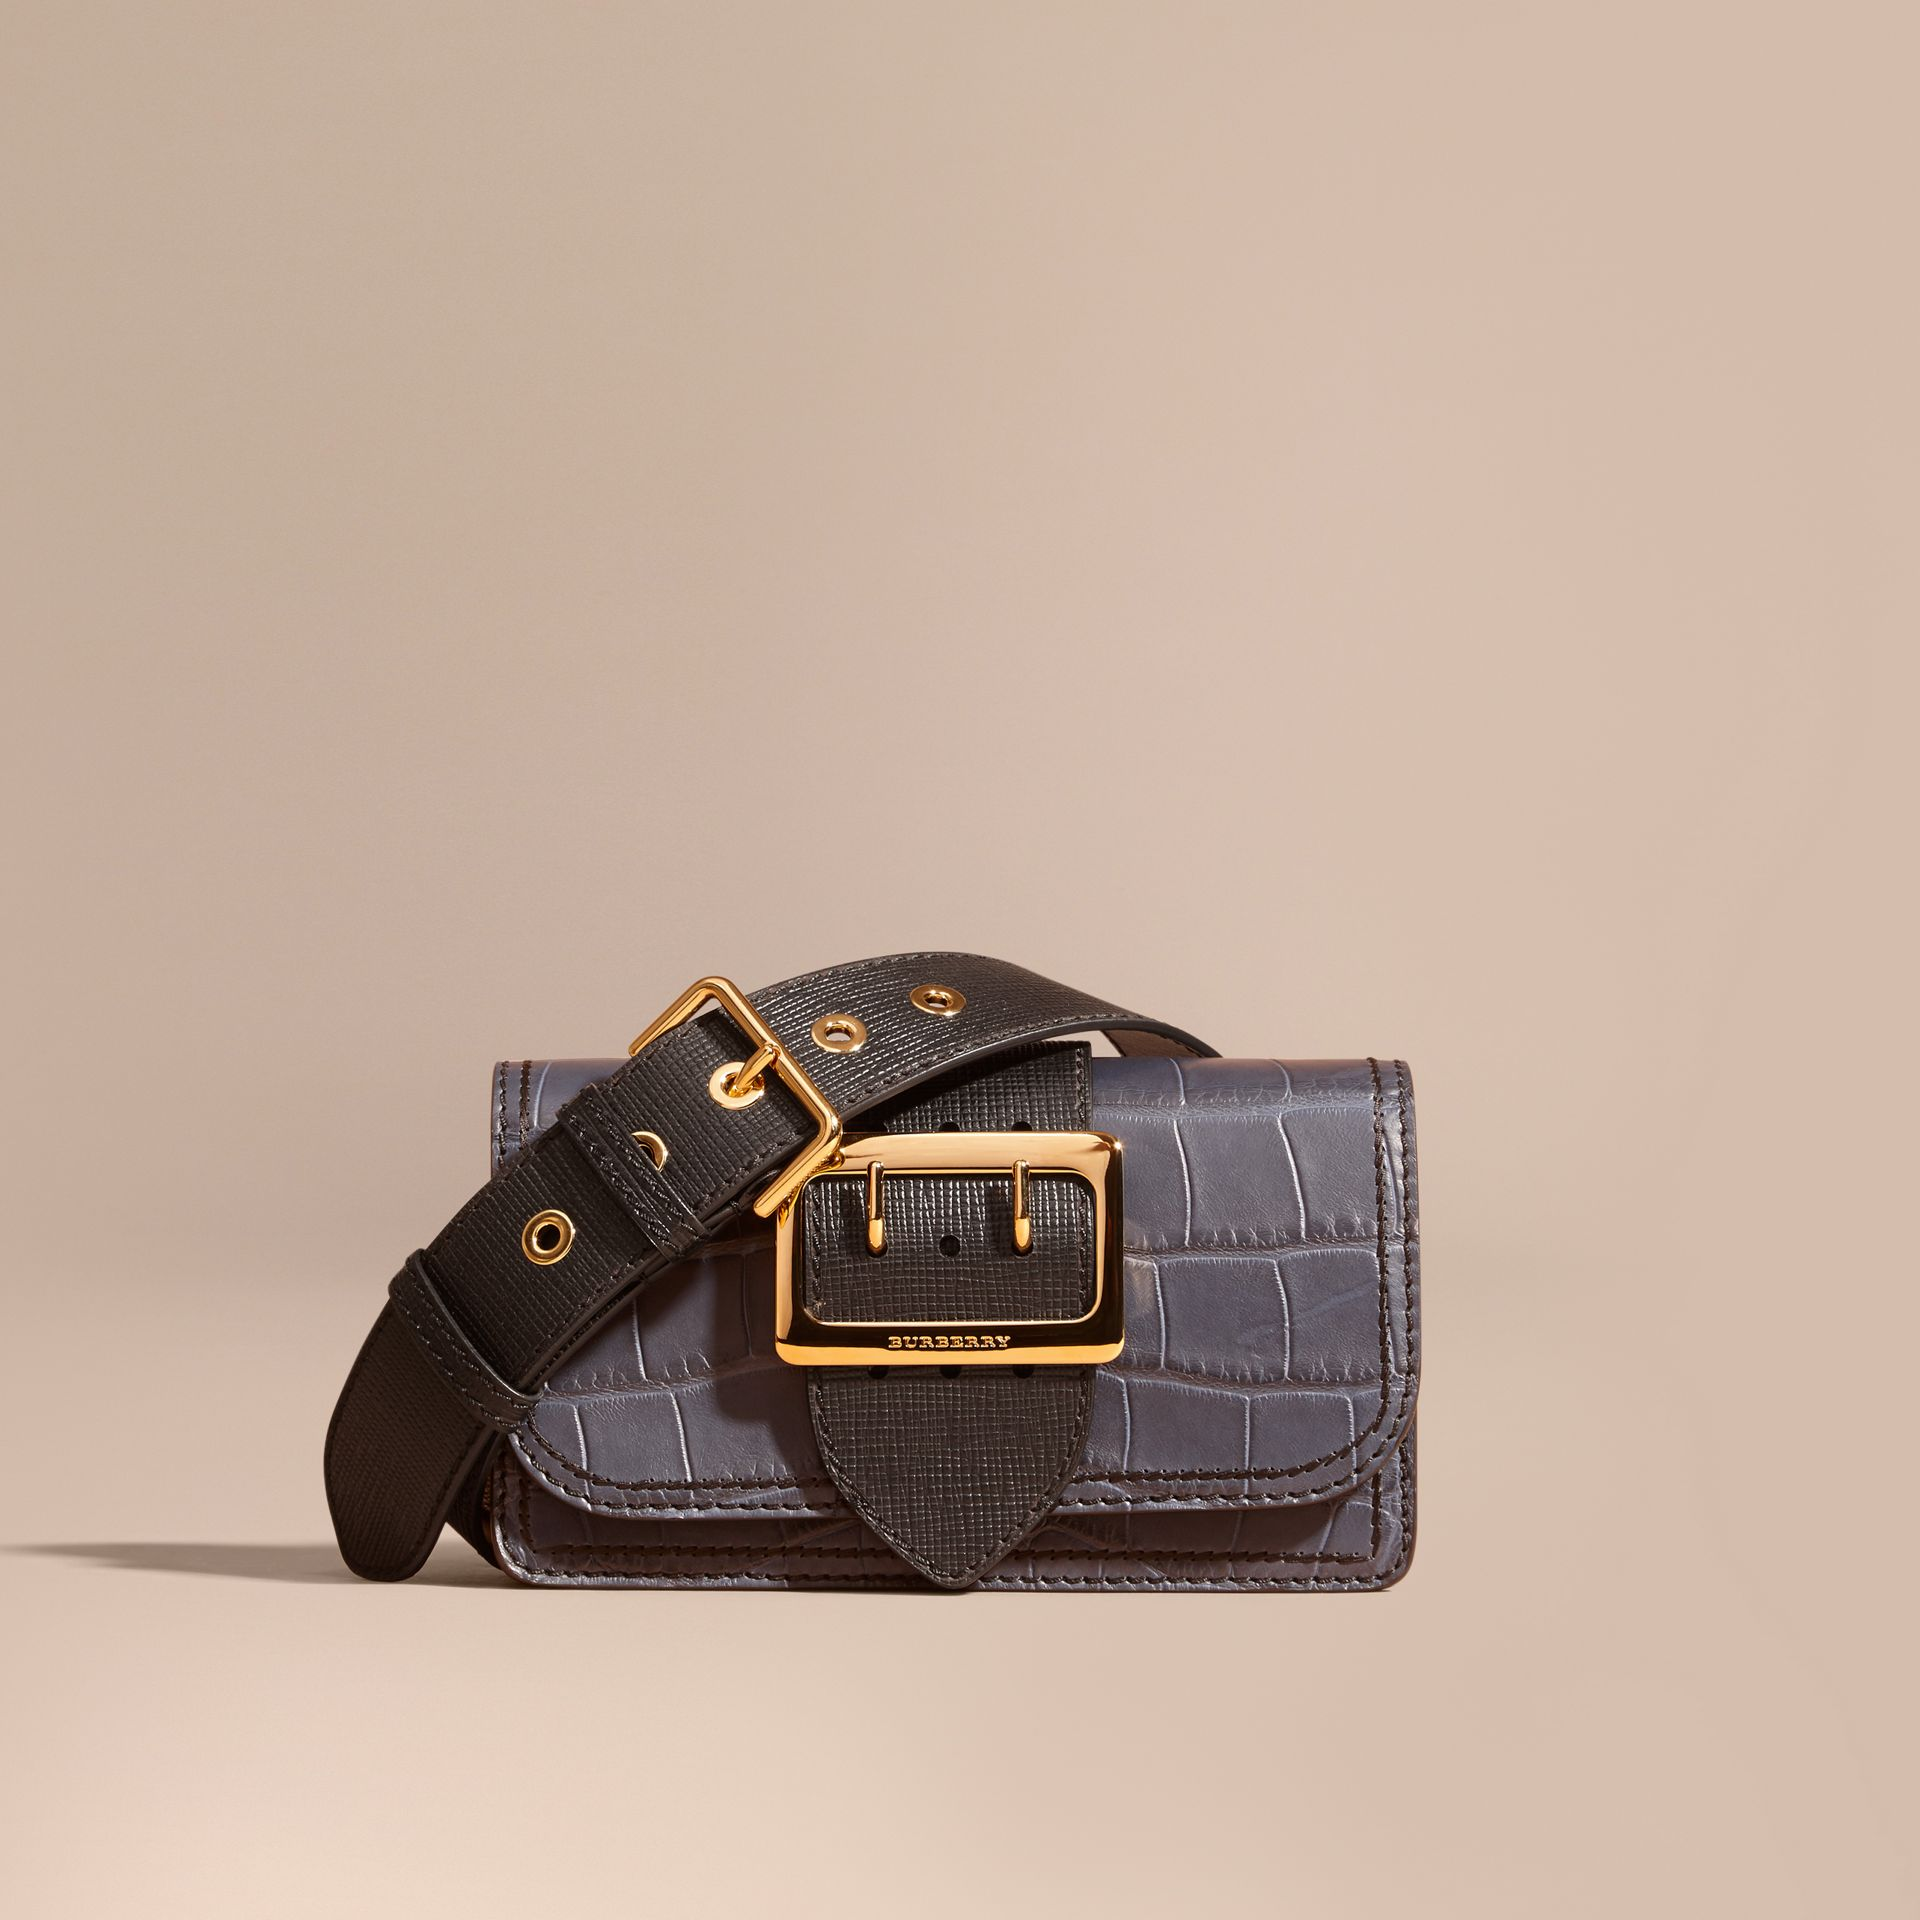 The Small Buckle Bag in Alligator and Leather in Navy / Black - Women | Burberry - gallery image 1